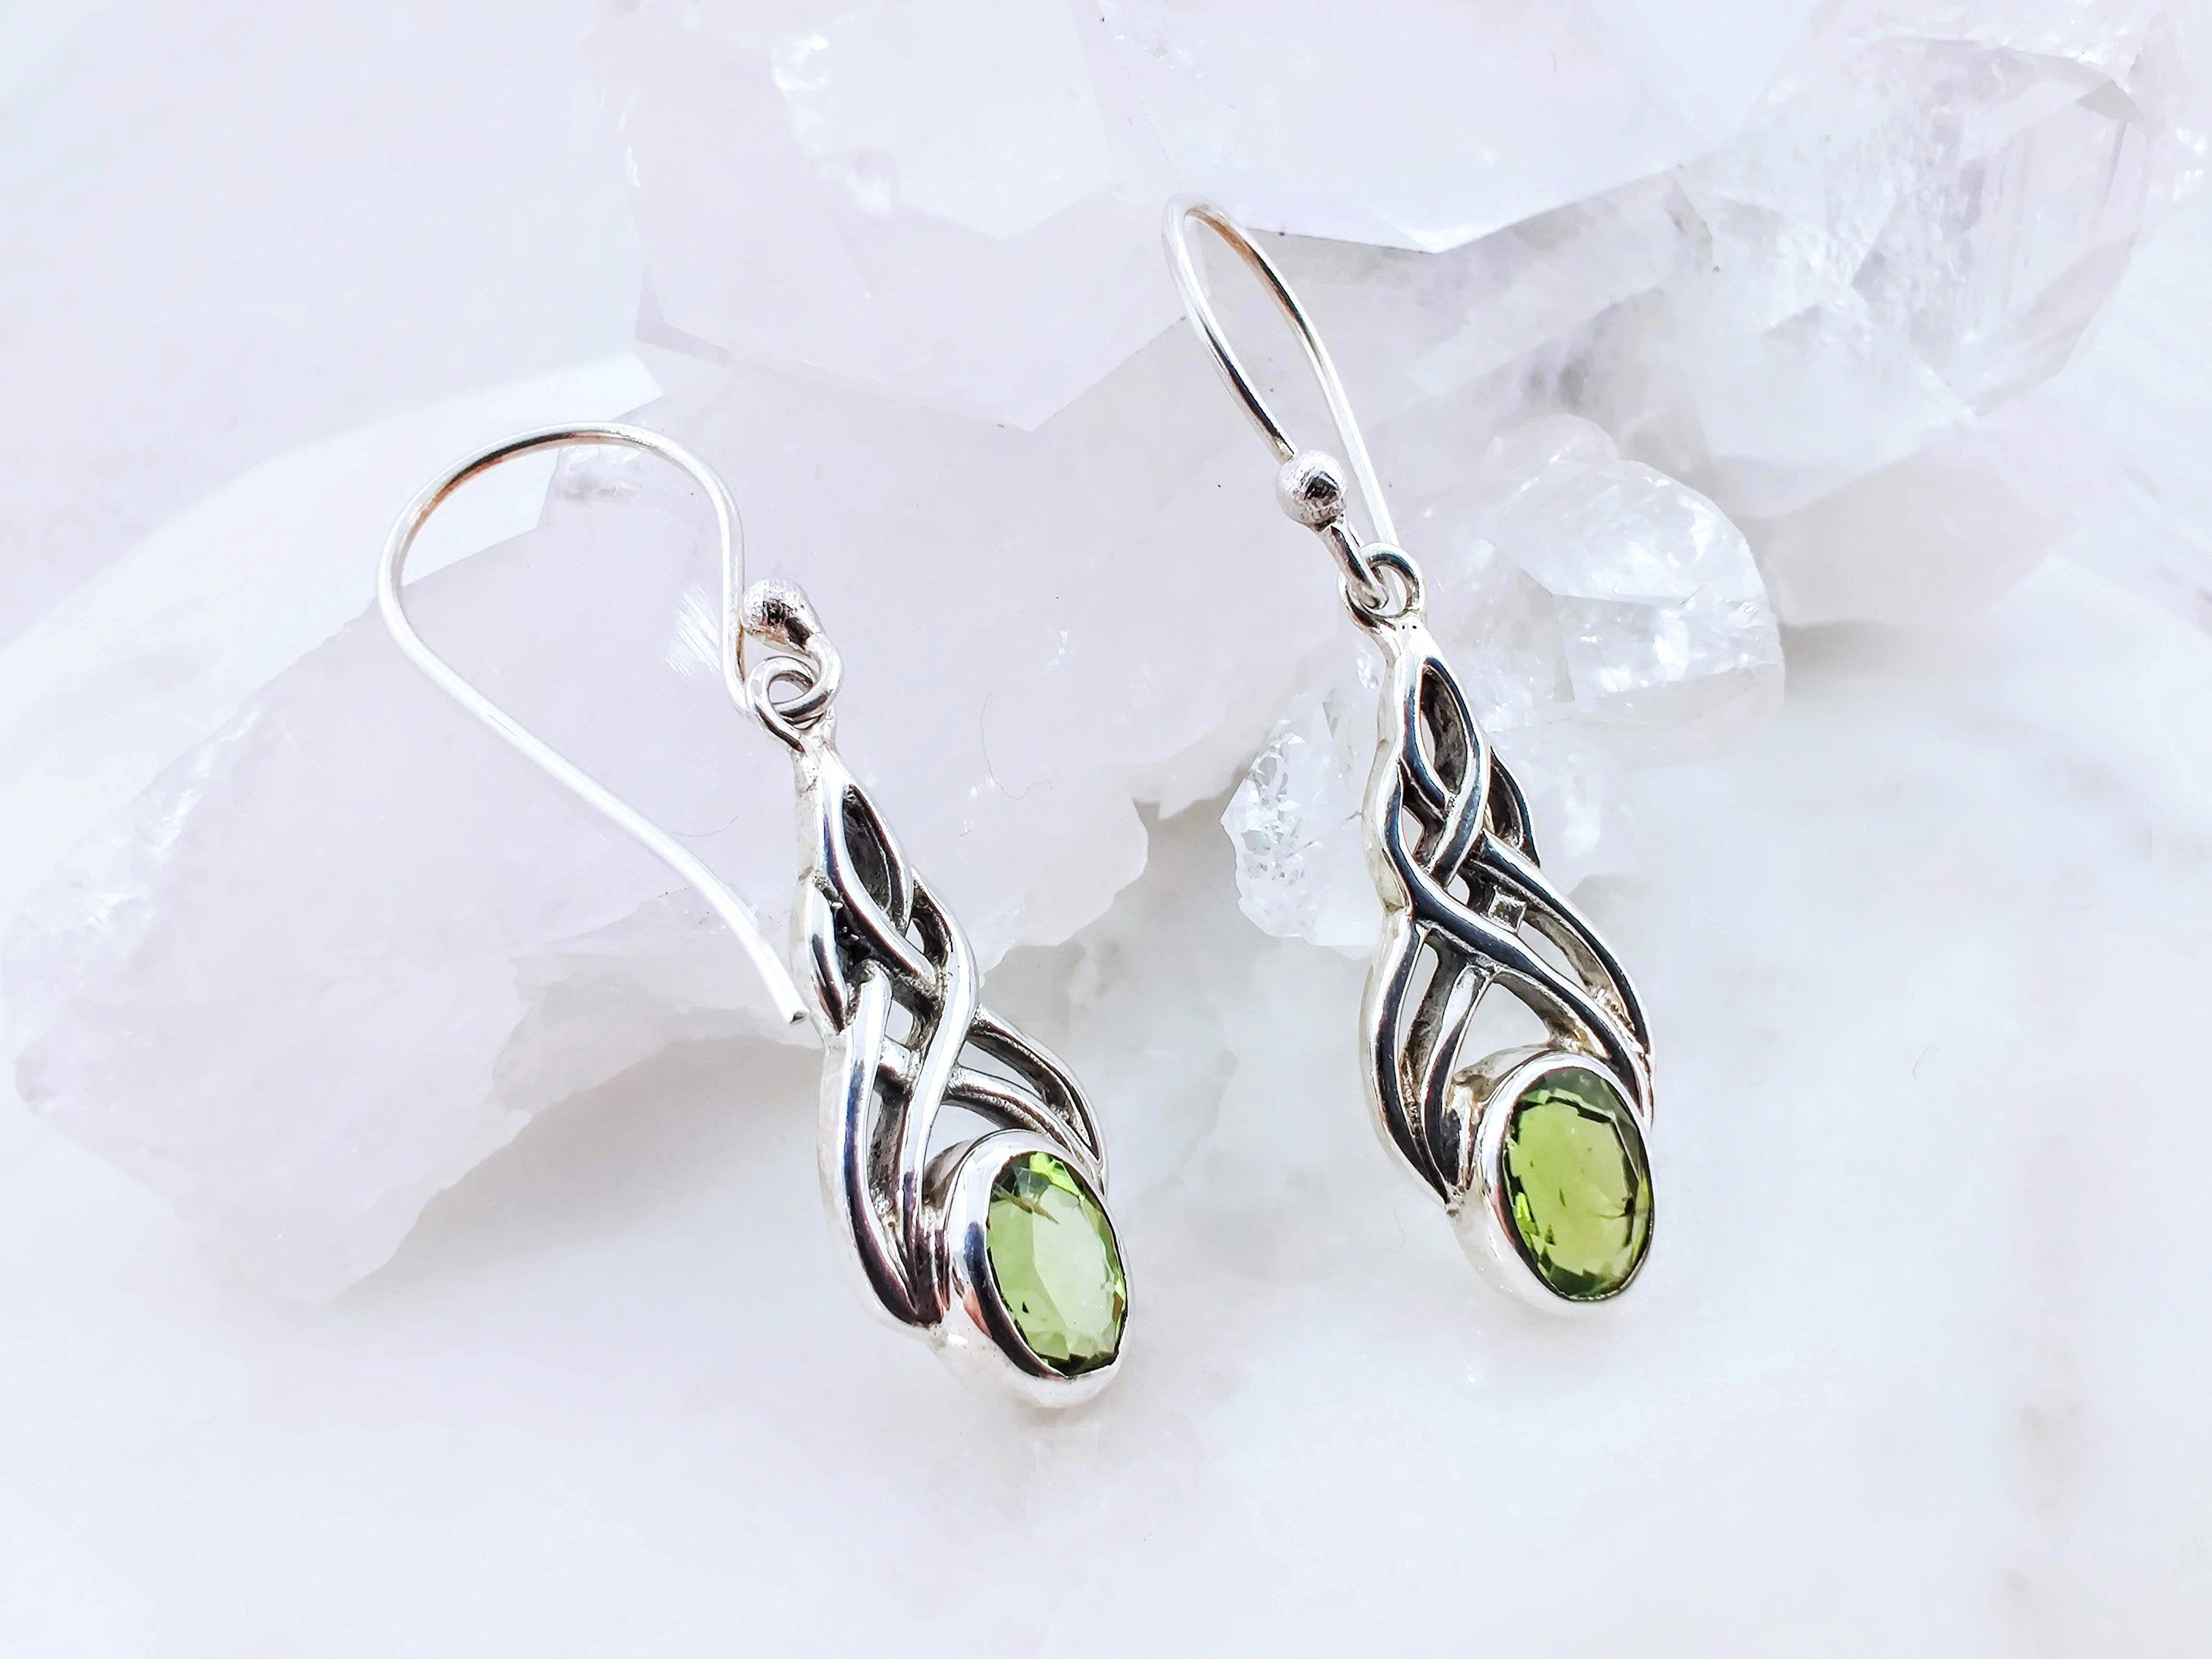 Celtic Design Sterling Silver Earrings with a Peridot Gemstone